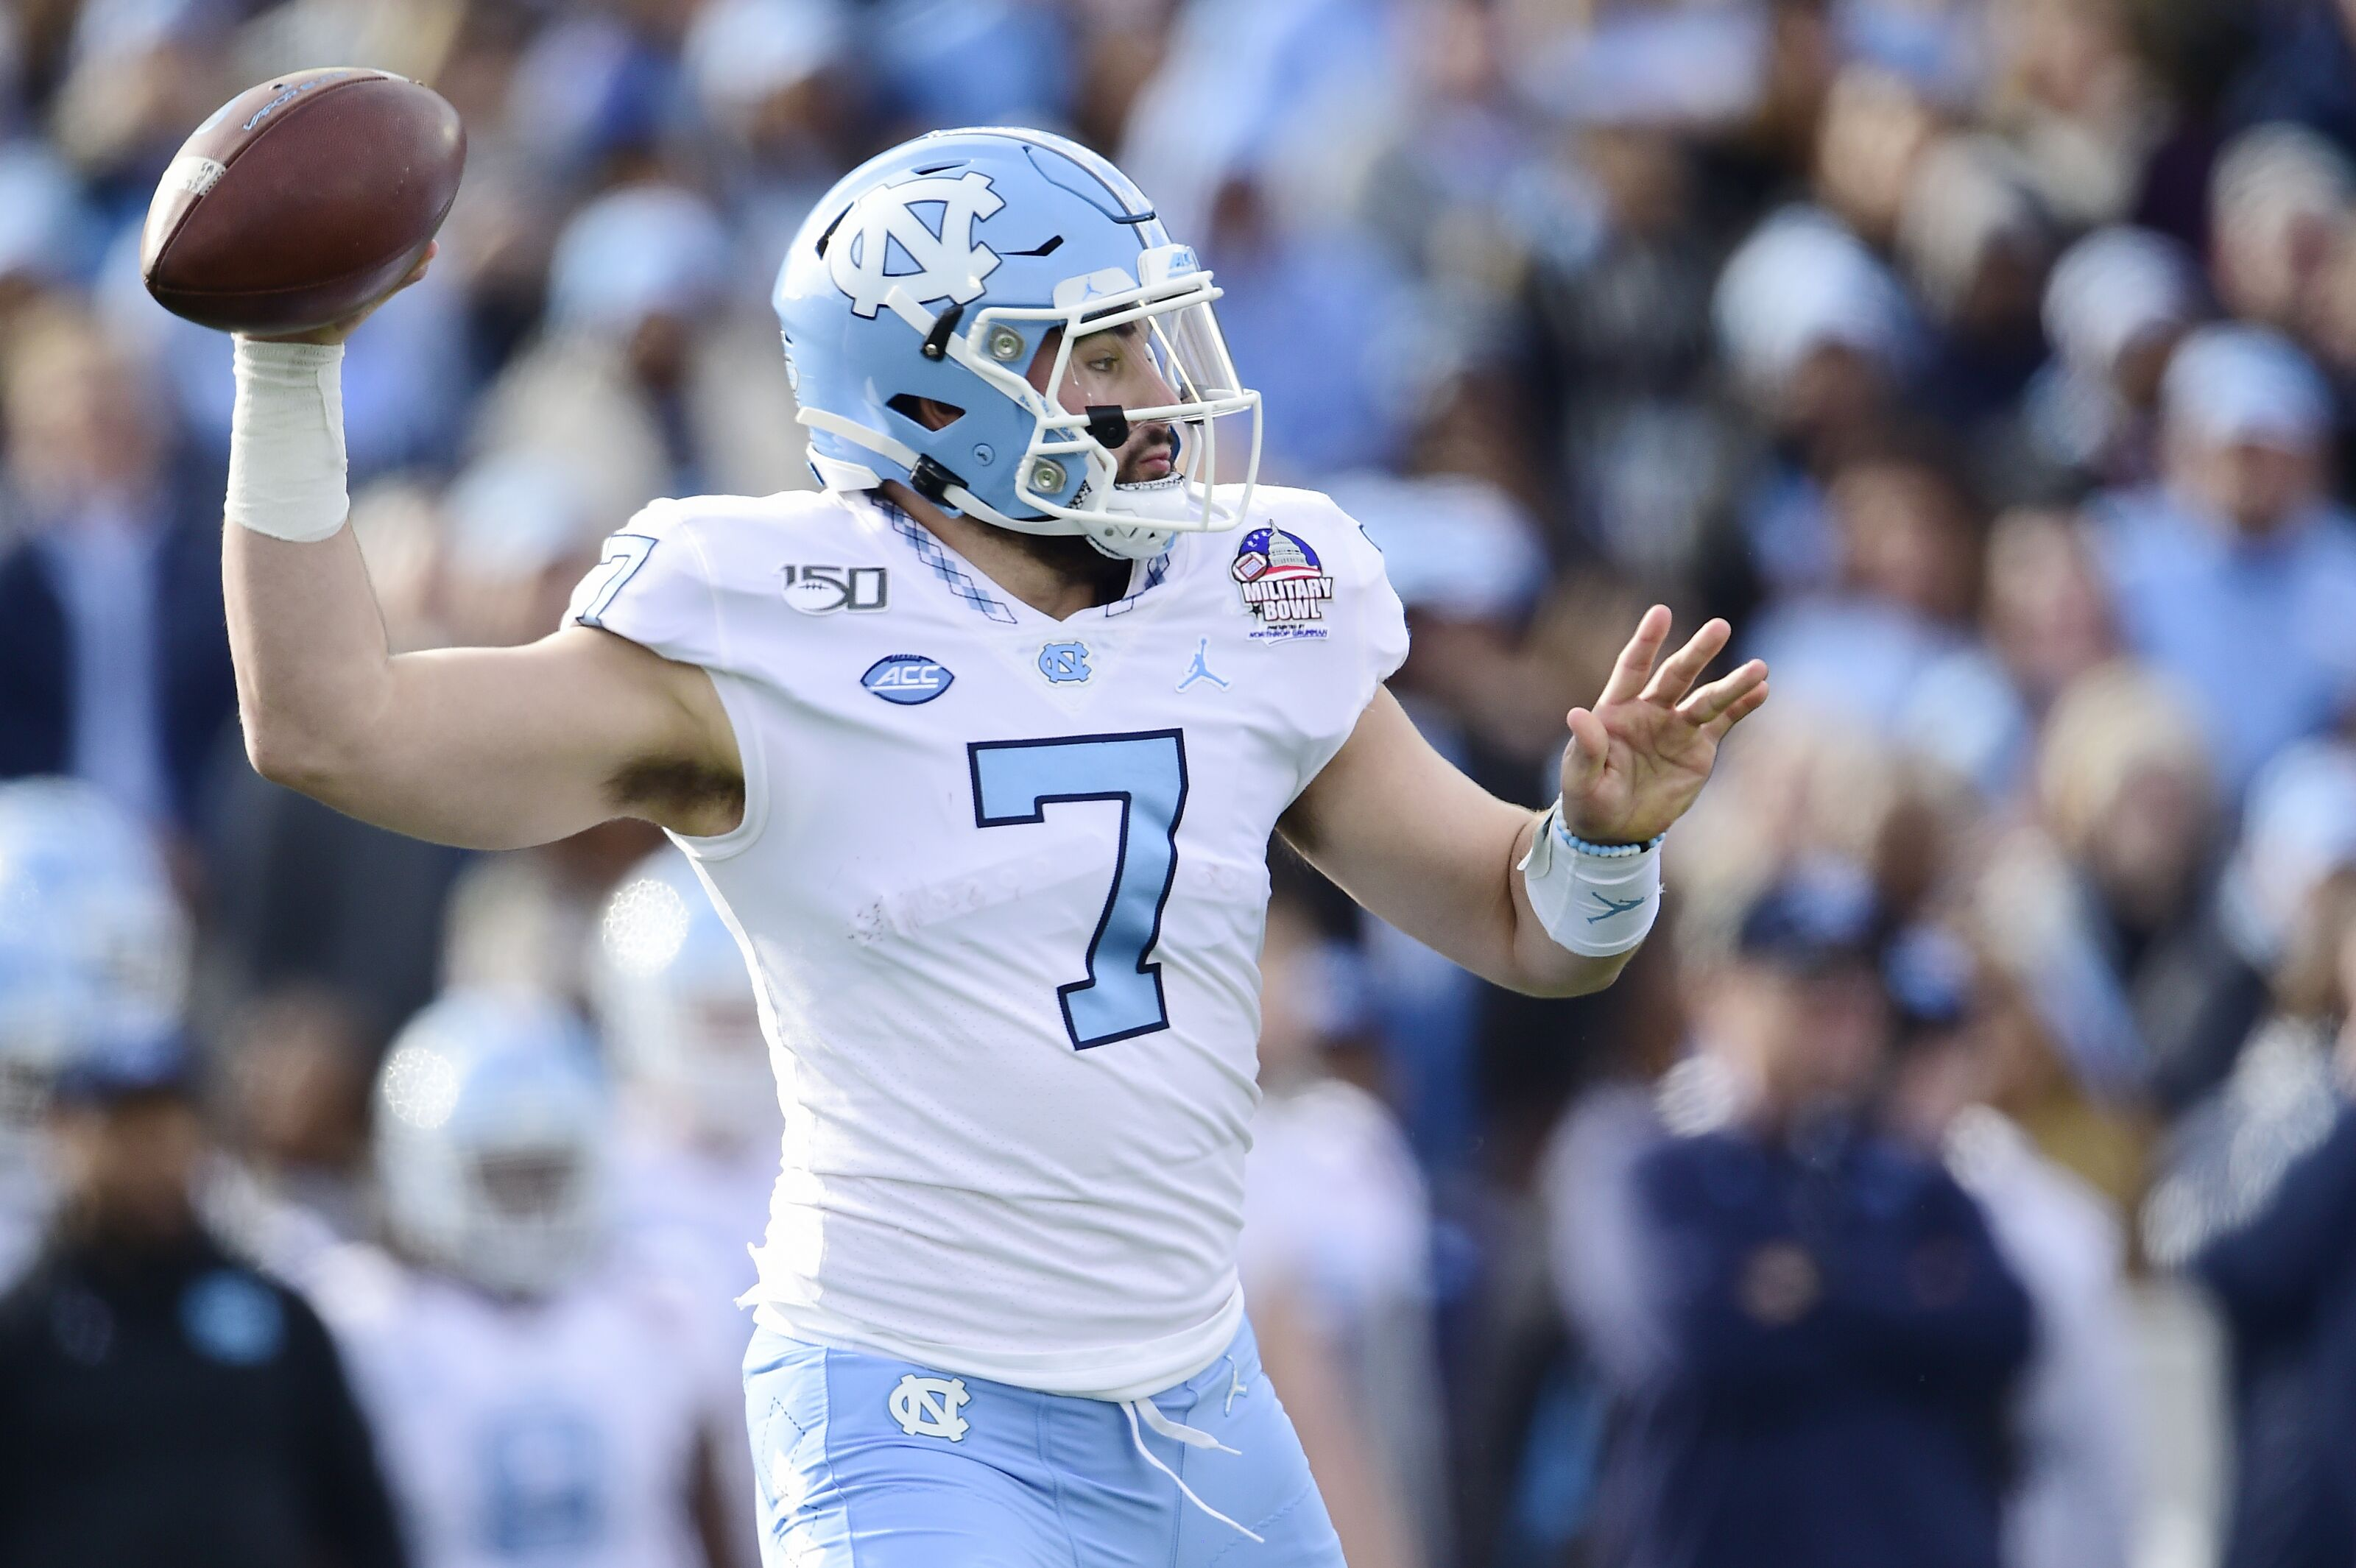 UNC Football: Tar Heels can be national contenders in 2020